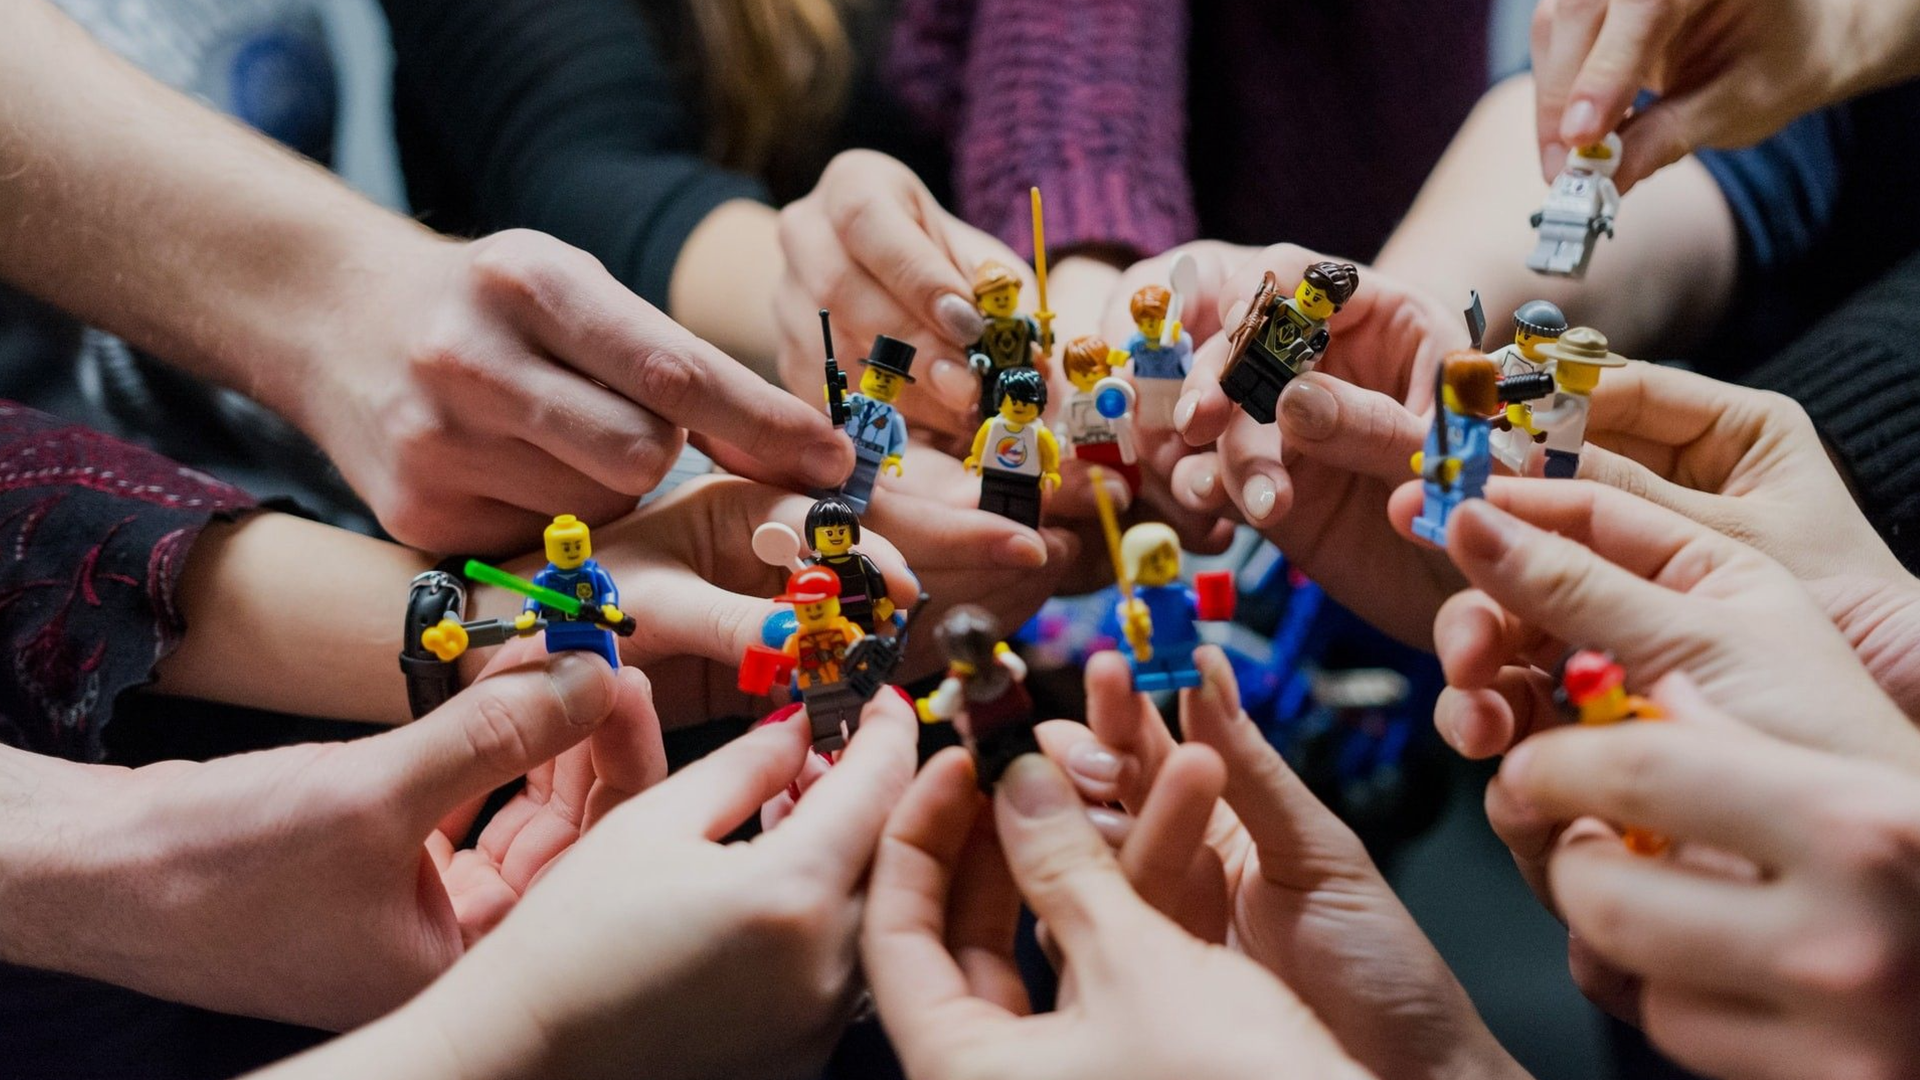 many hands, each holding a lego play figure